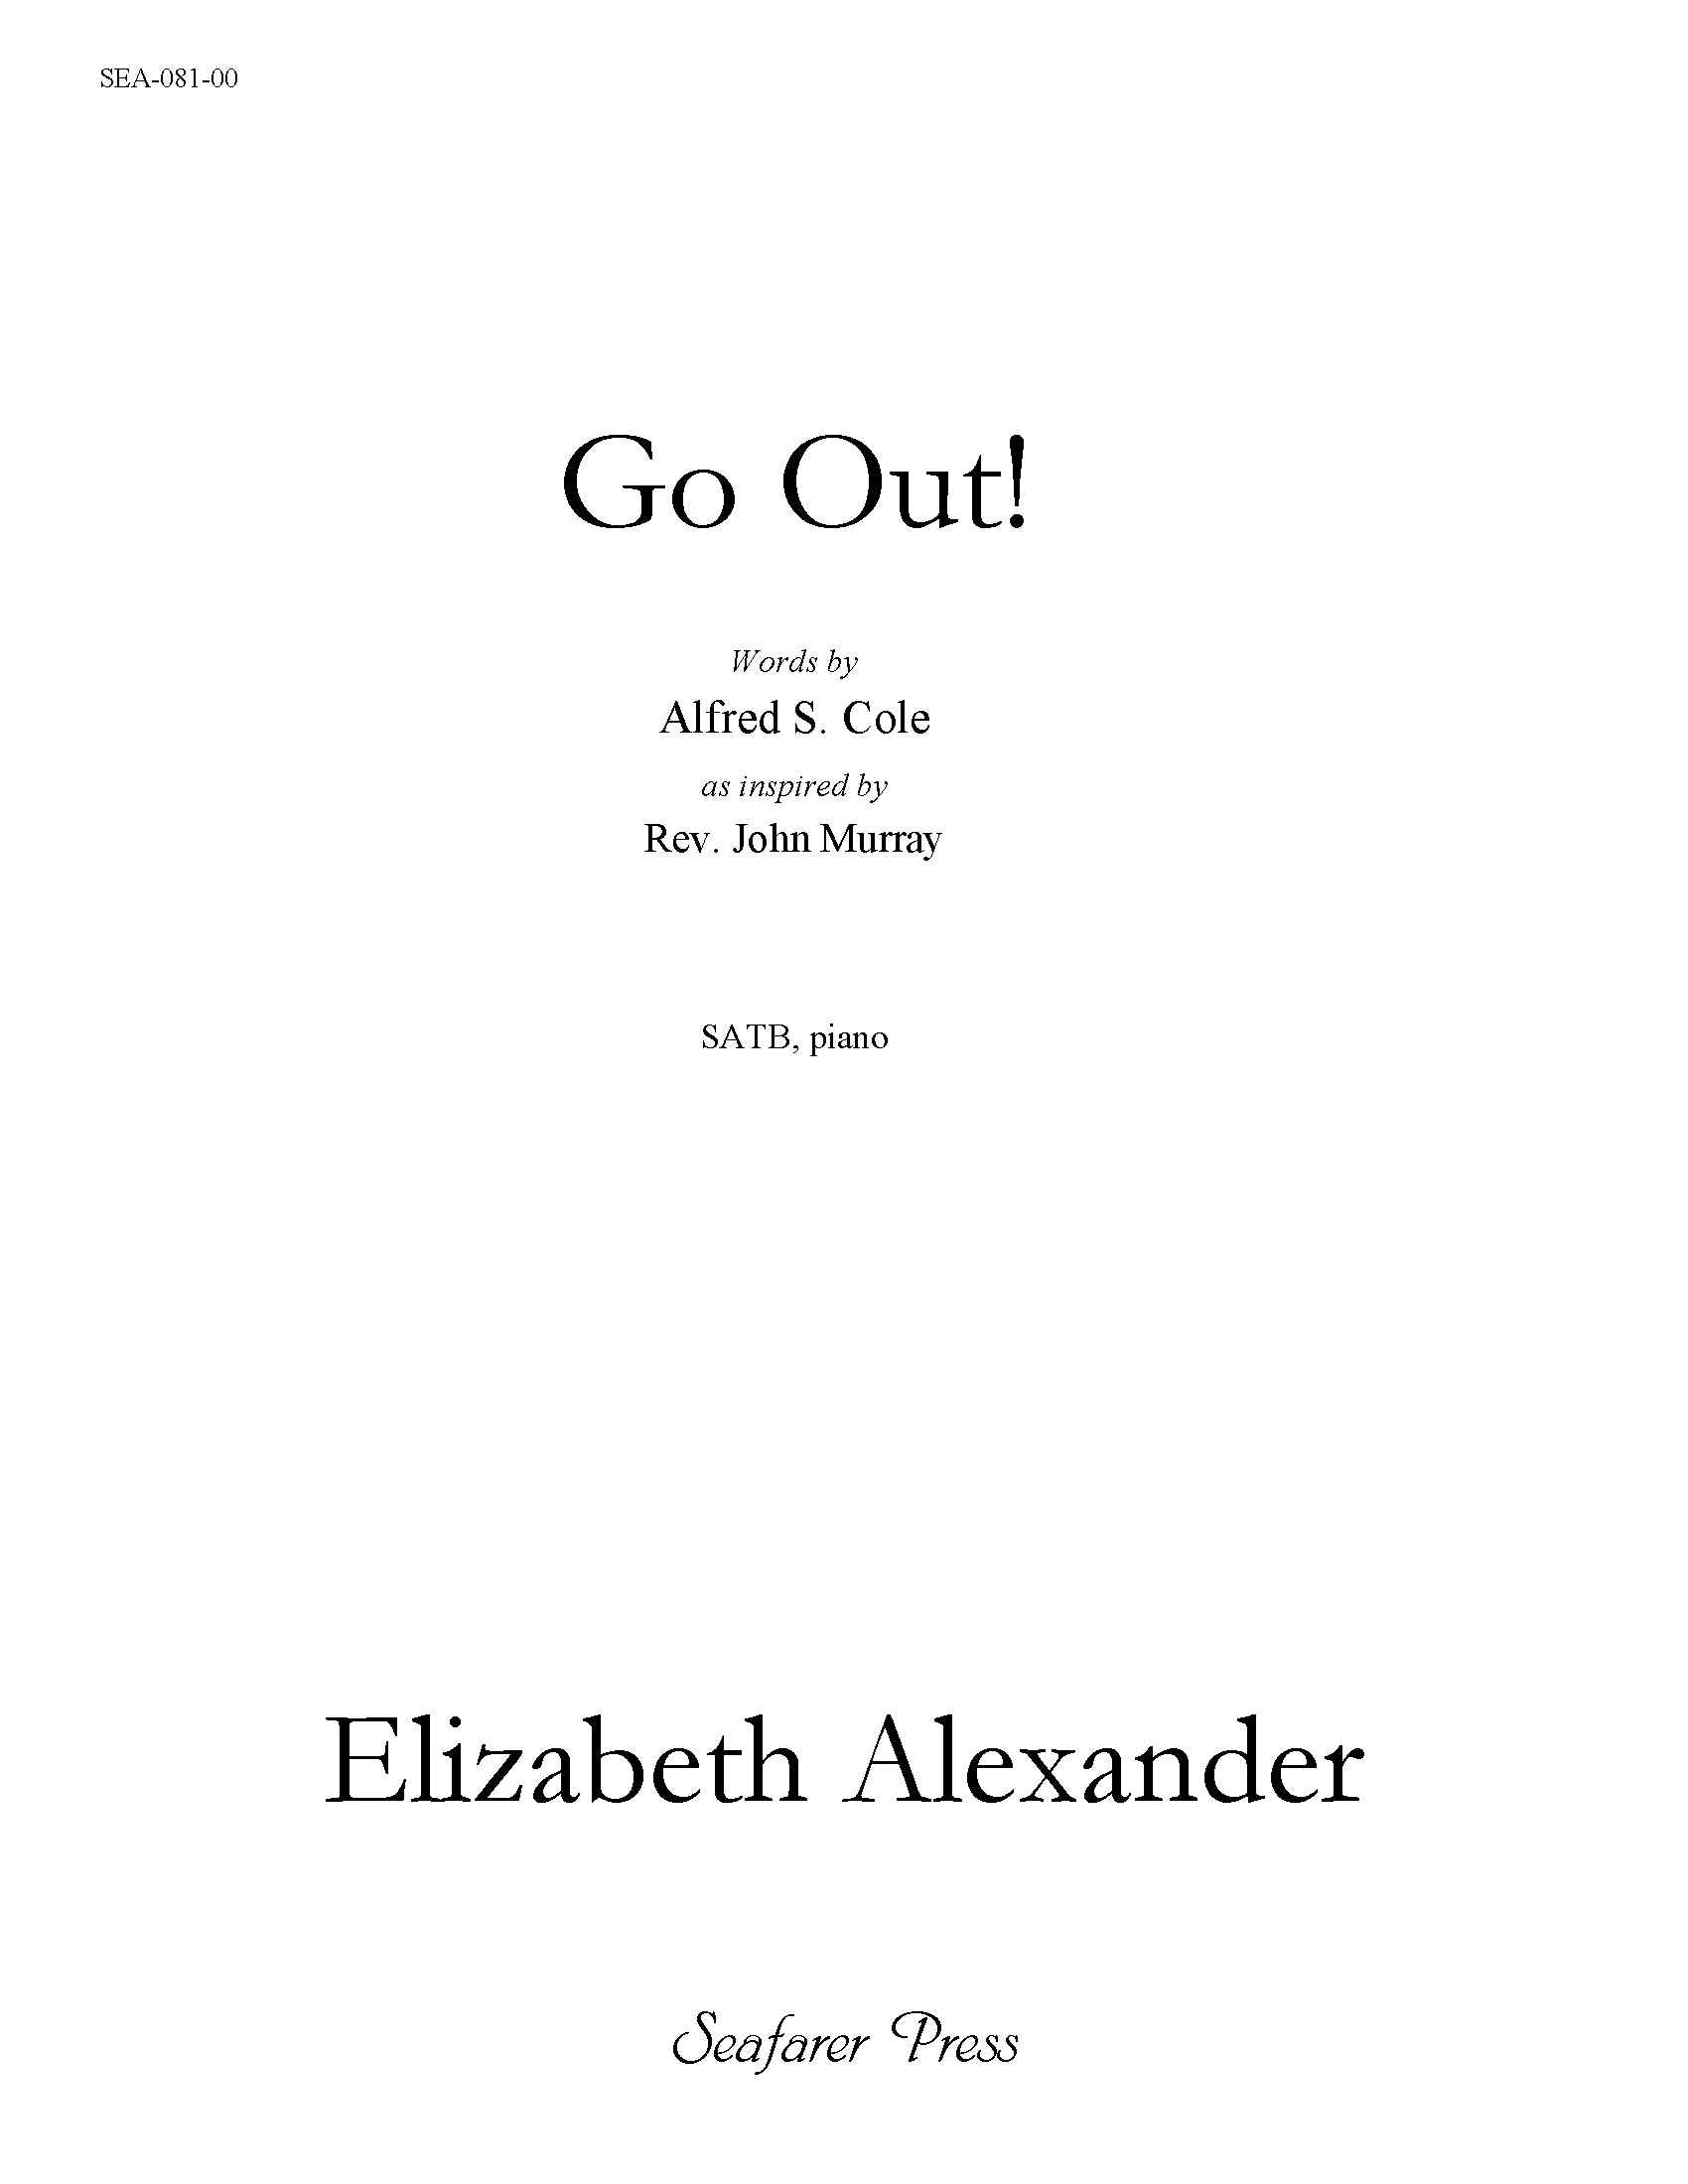 SEA-081-00 - Go Out! (Individual Song)